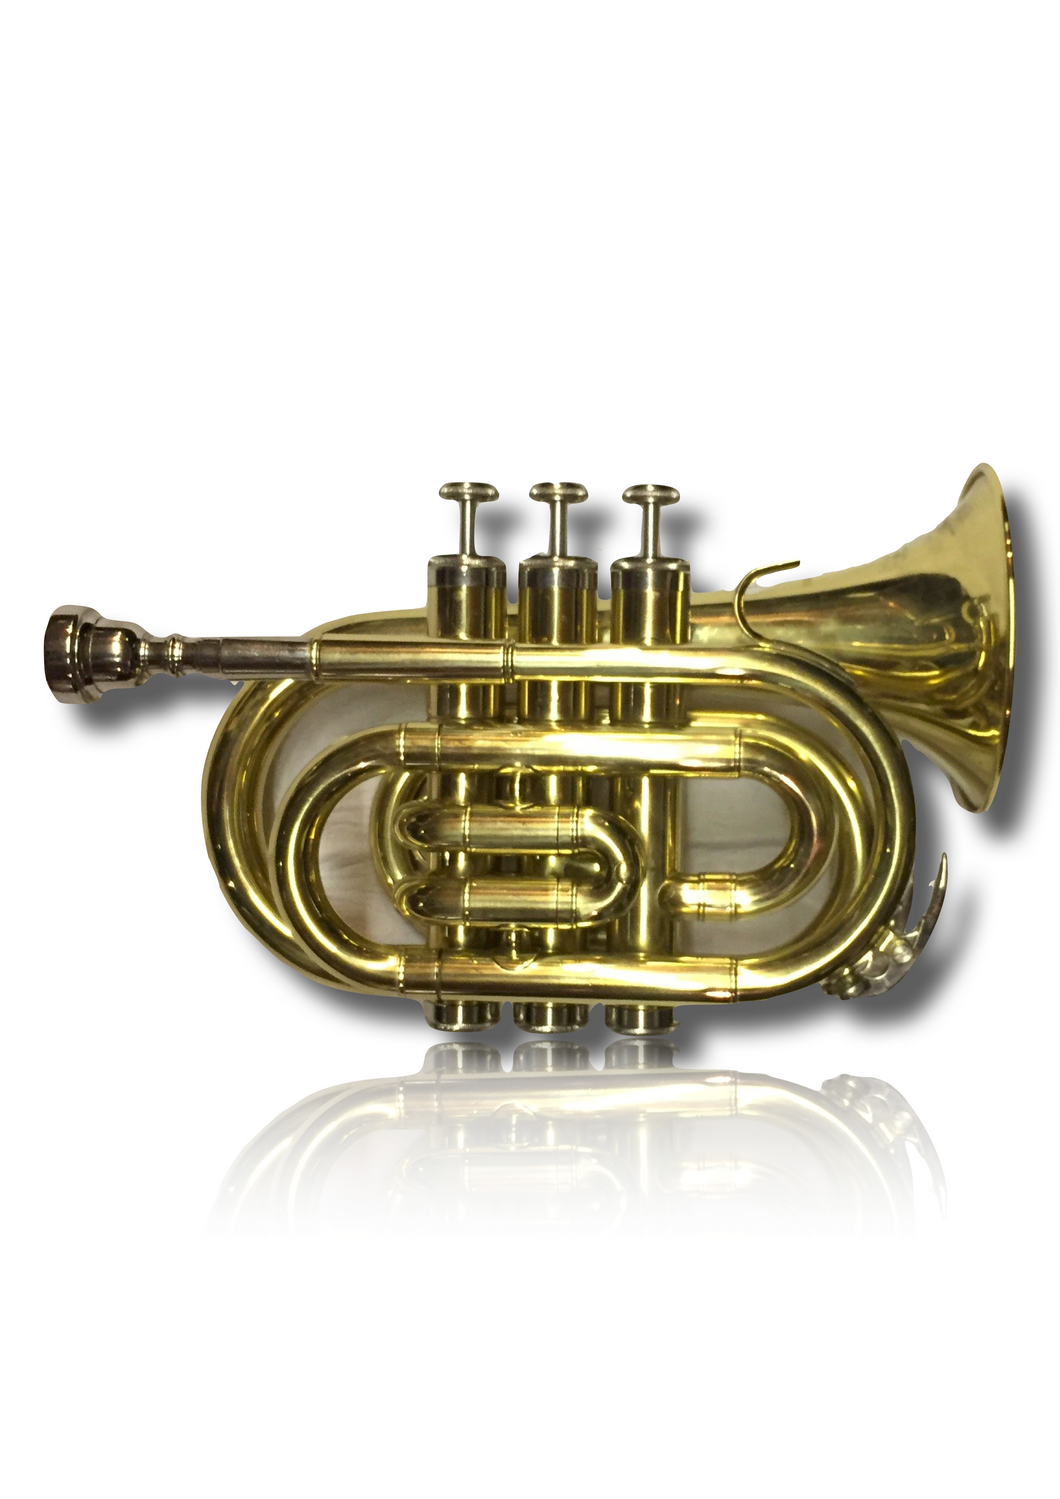 Nashville Pocket Trumpet (With Hard Case) - Varsity Music Shop